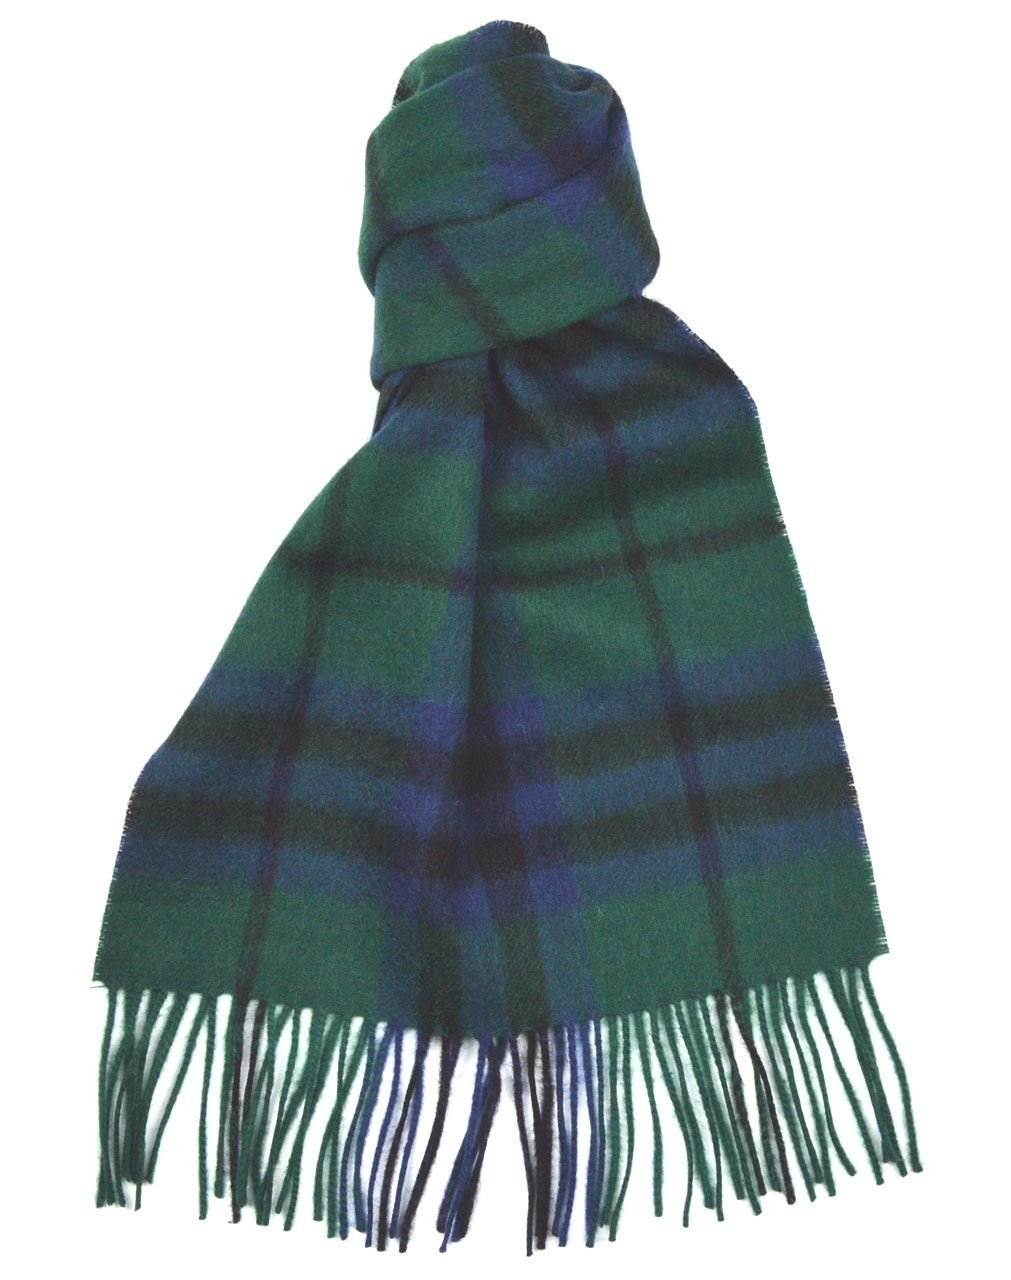 Lambswool Scottish Clan Scarf Austin Modern Tartan by Macdonald Sporrans (Image #1)